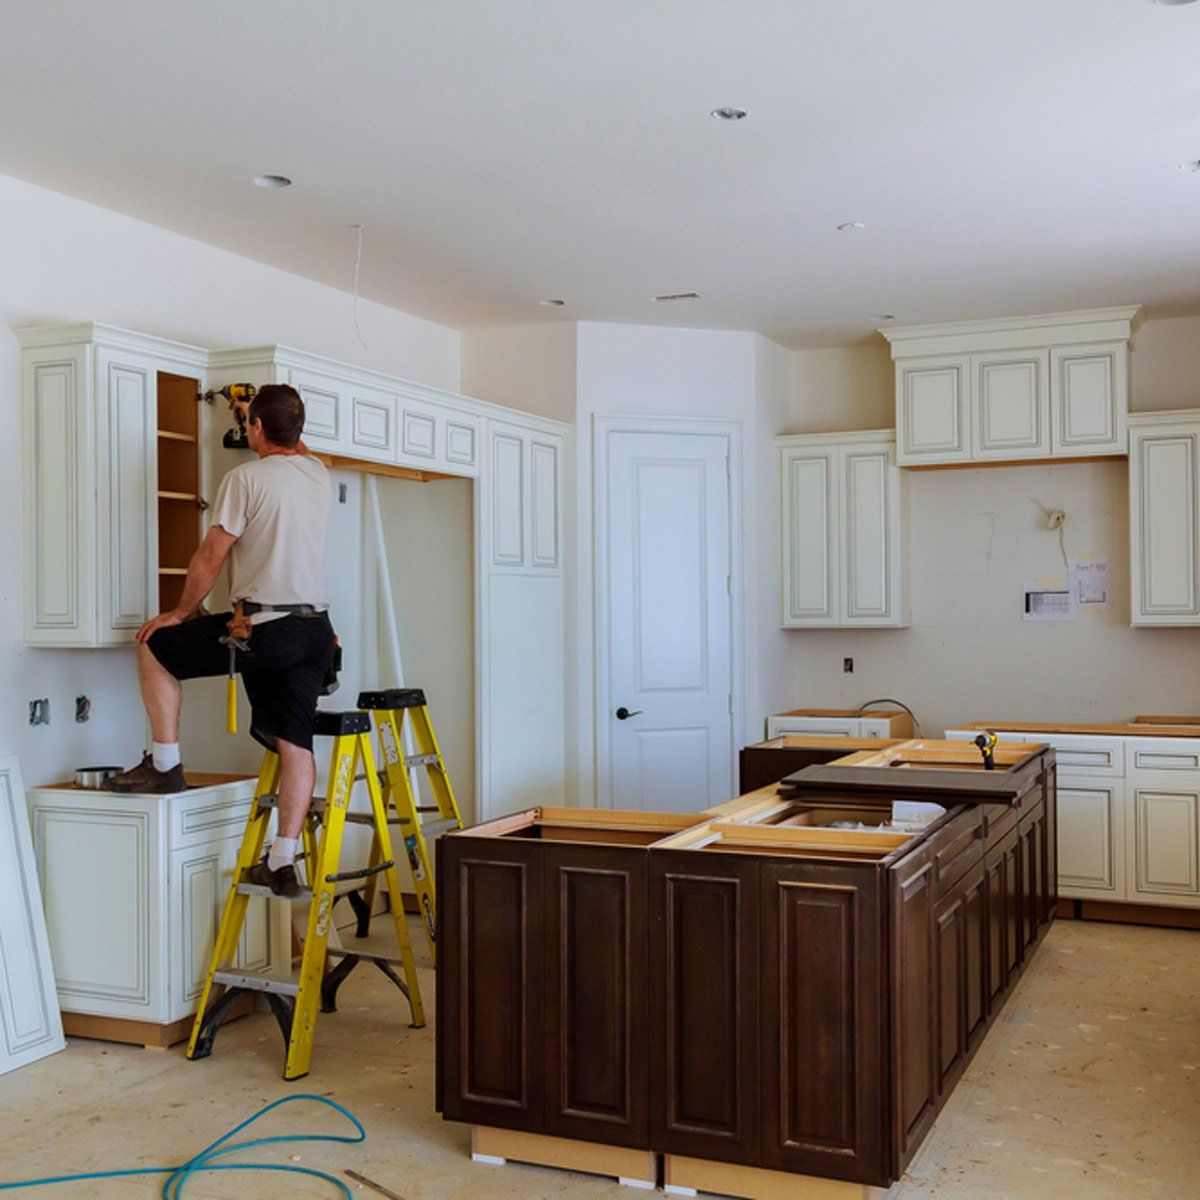 Kitchen Renovation Dos And Don Ts: 10 Things You Should Never Do During A Kitchen Renovation